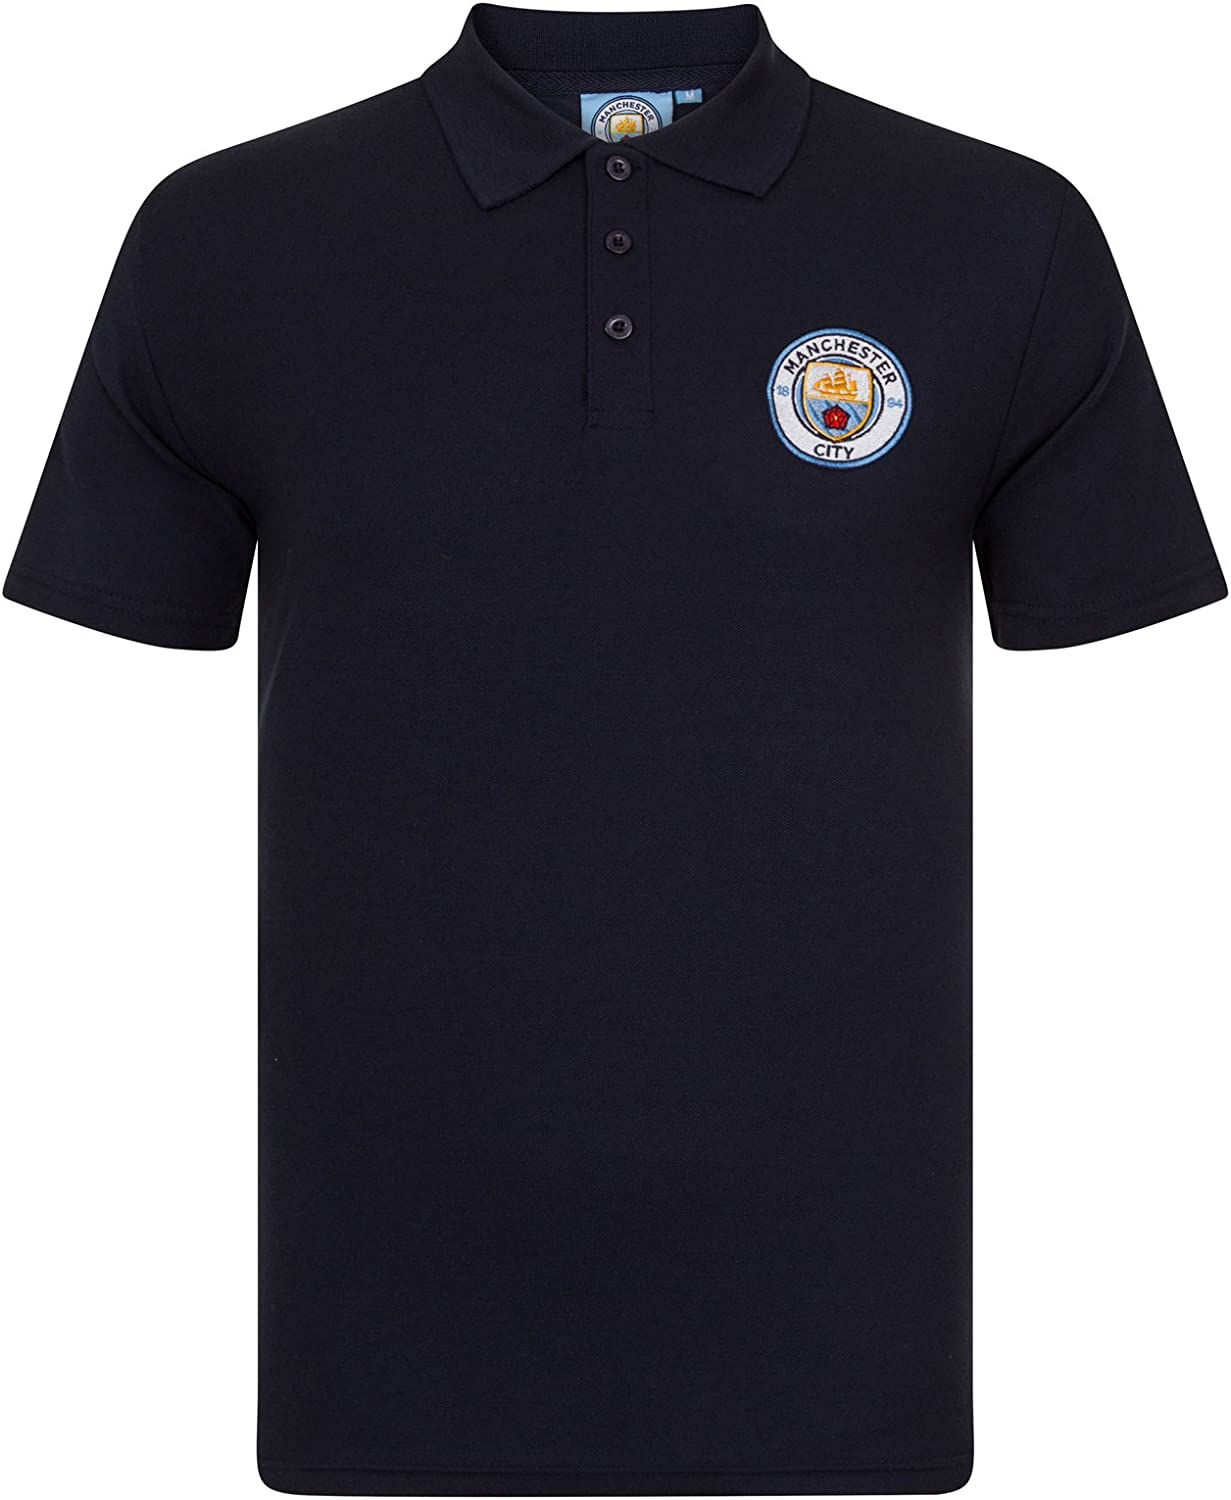 Manchester City FC Football Soccer At the price Polo Official Gift Mens Crest excellence